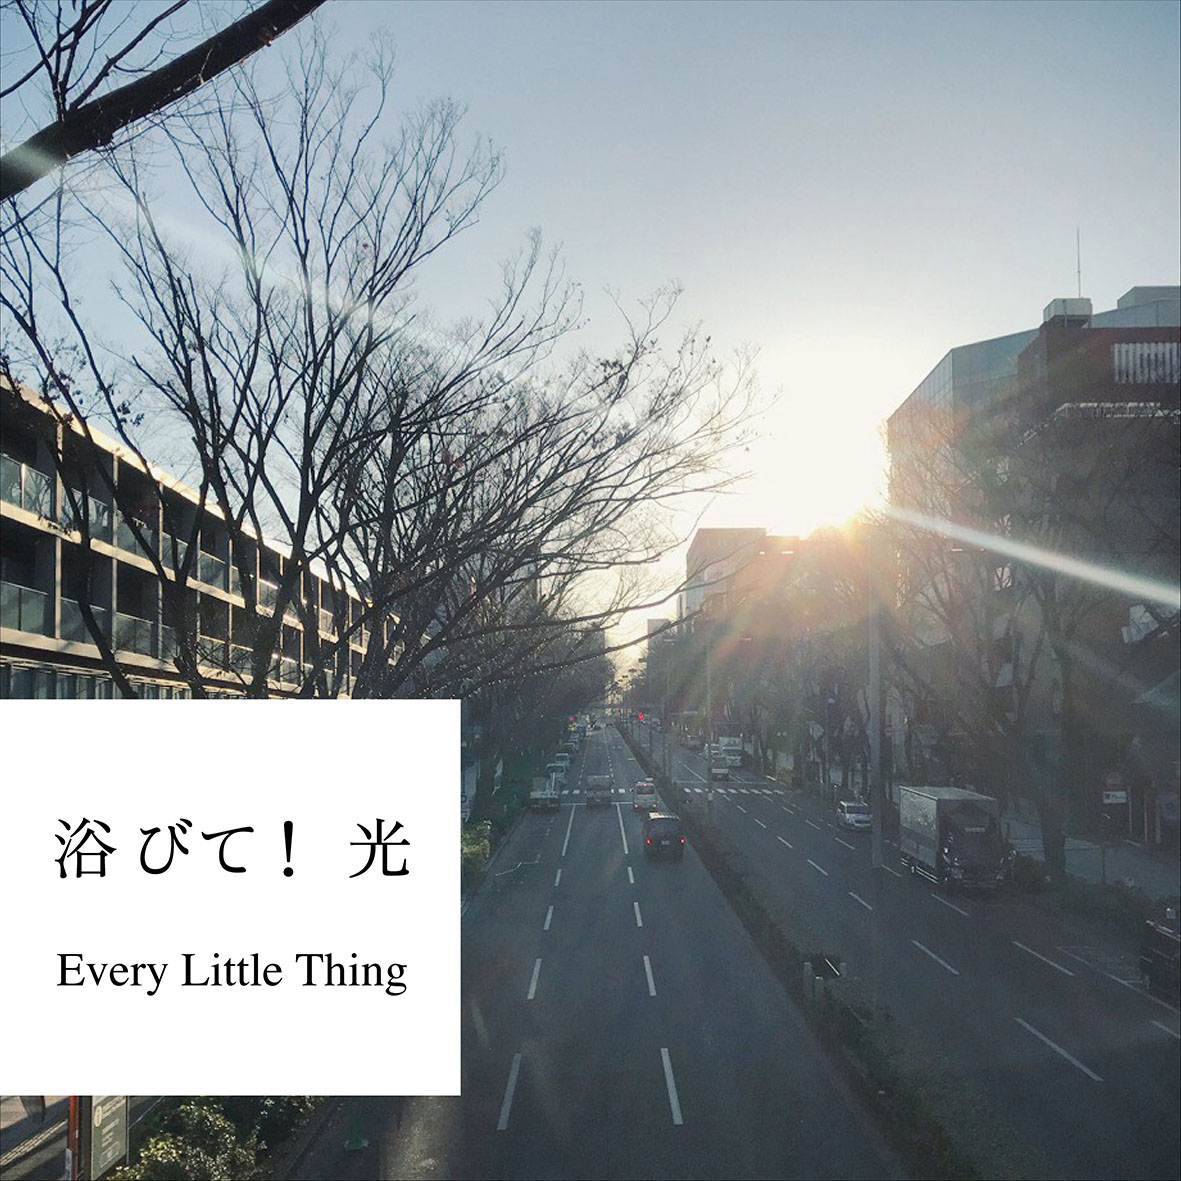 Every Little Thing 5月23日配信シングル「浴びて!光」